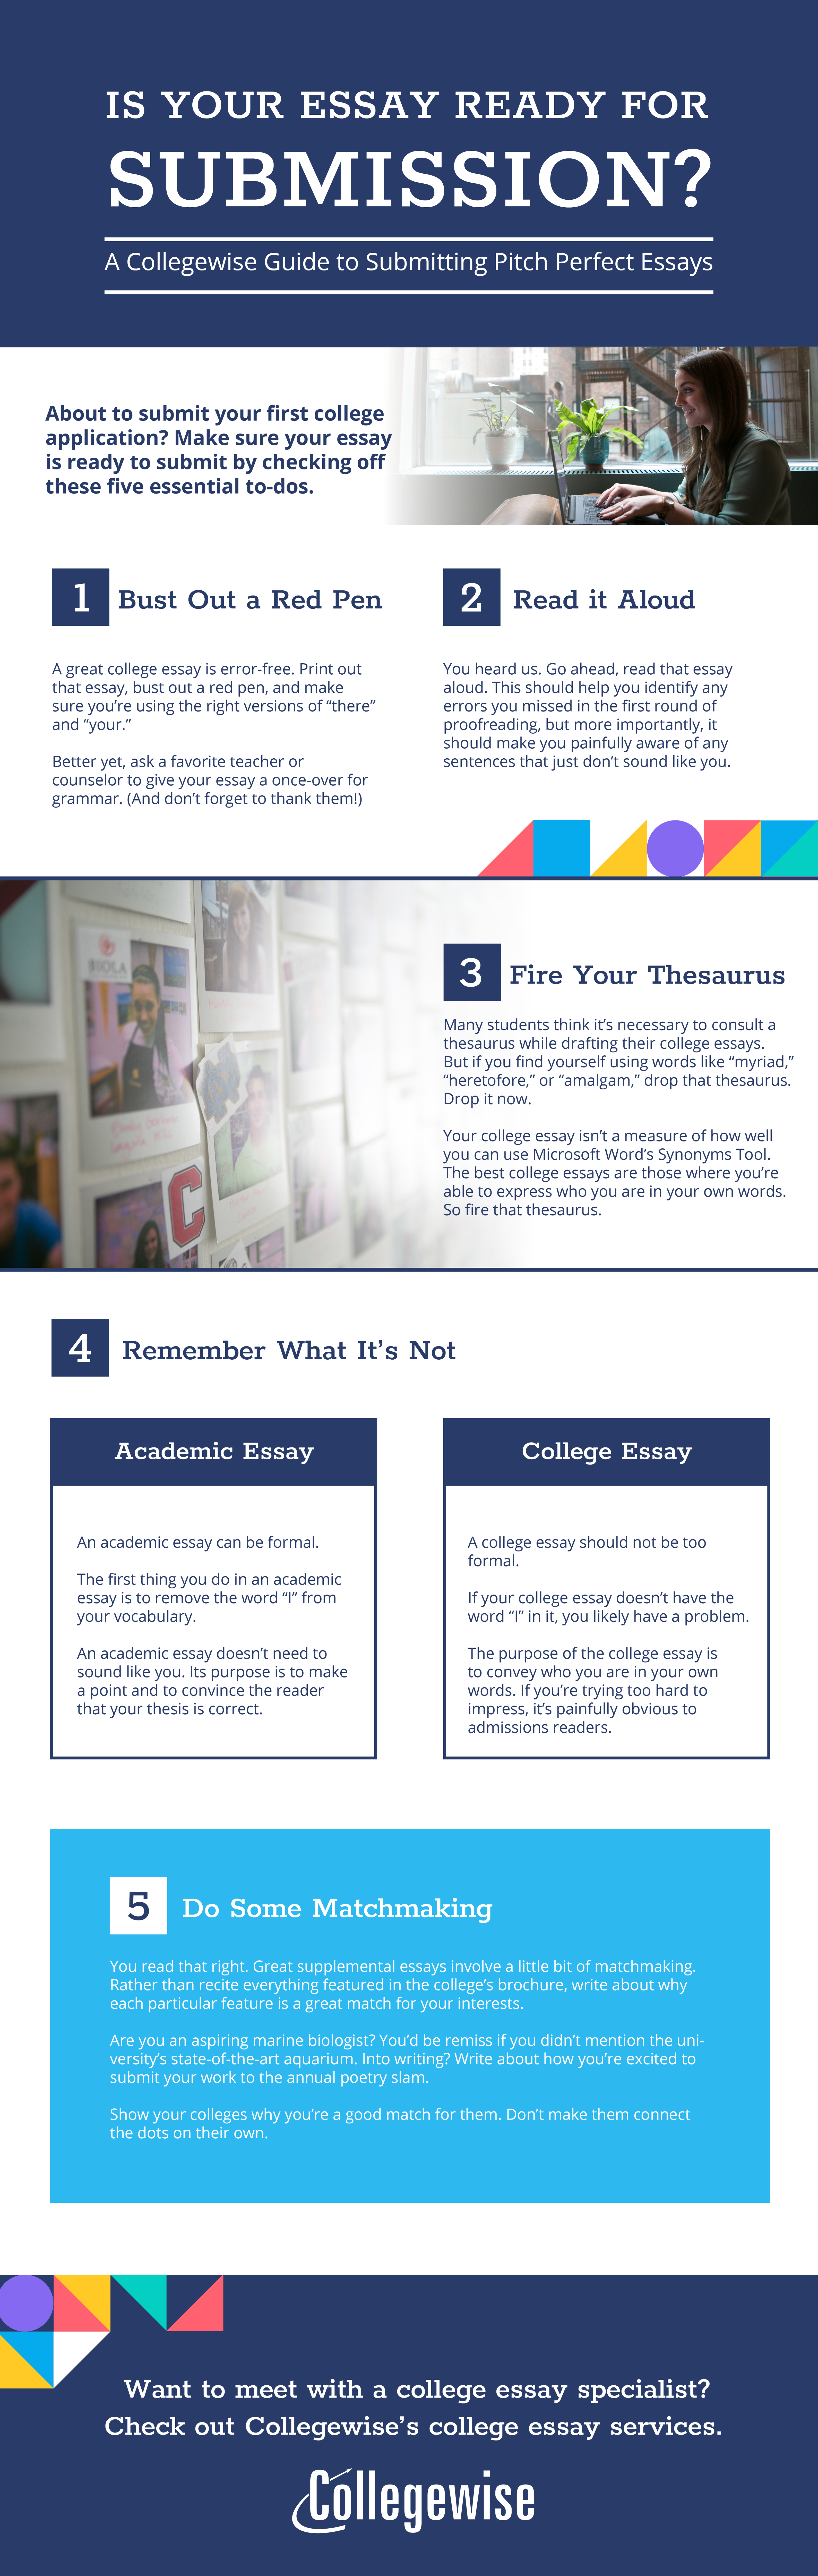 Is your essay ready to submit to colleges?